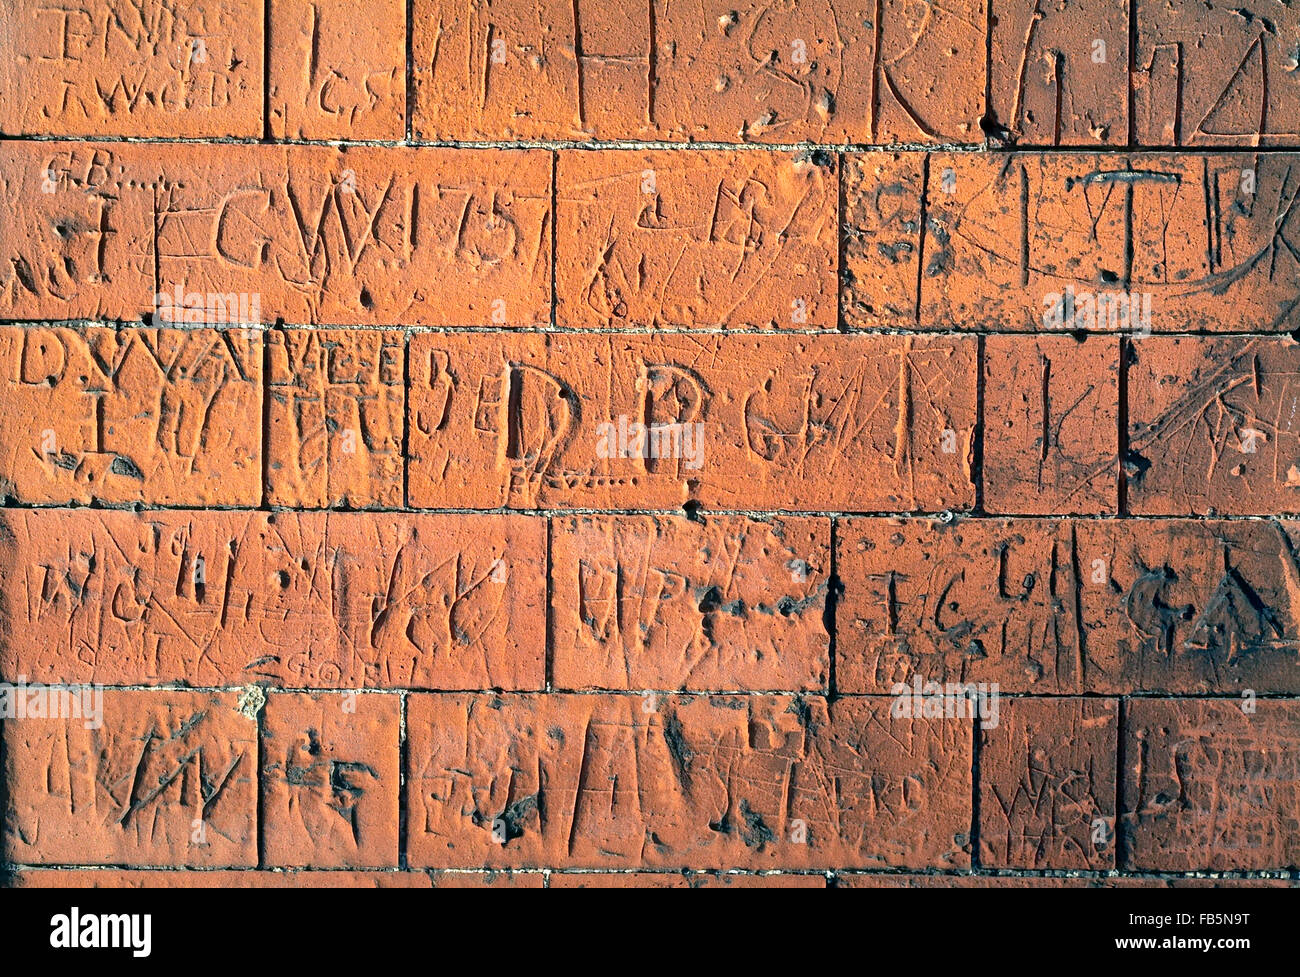 Brick Wall with carved signs and words - Stock Image